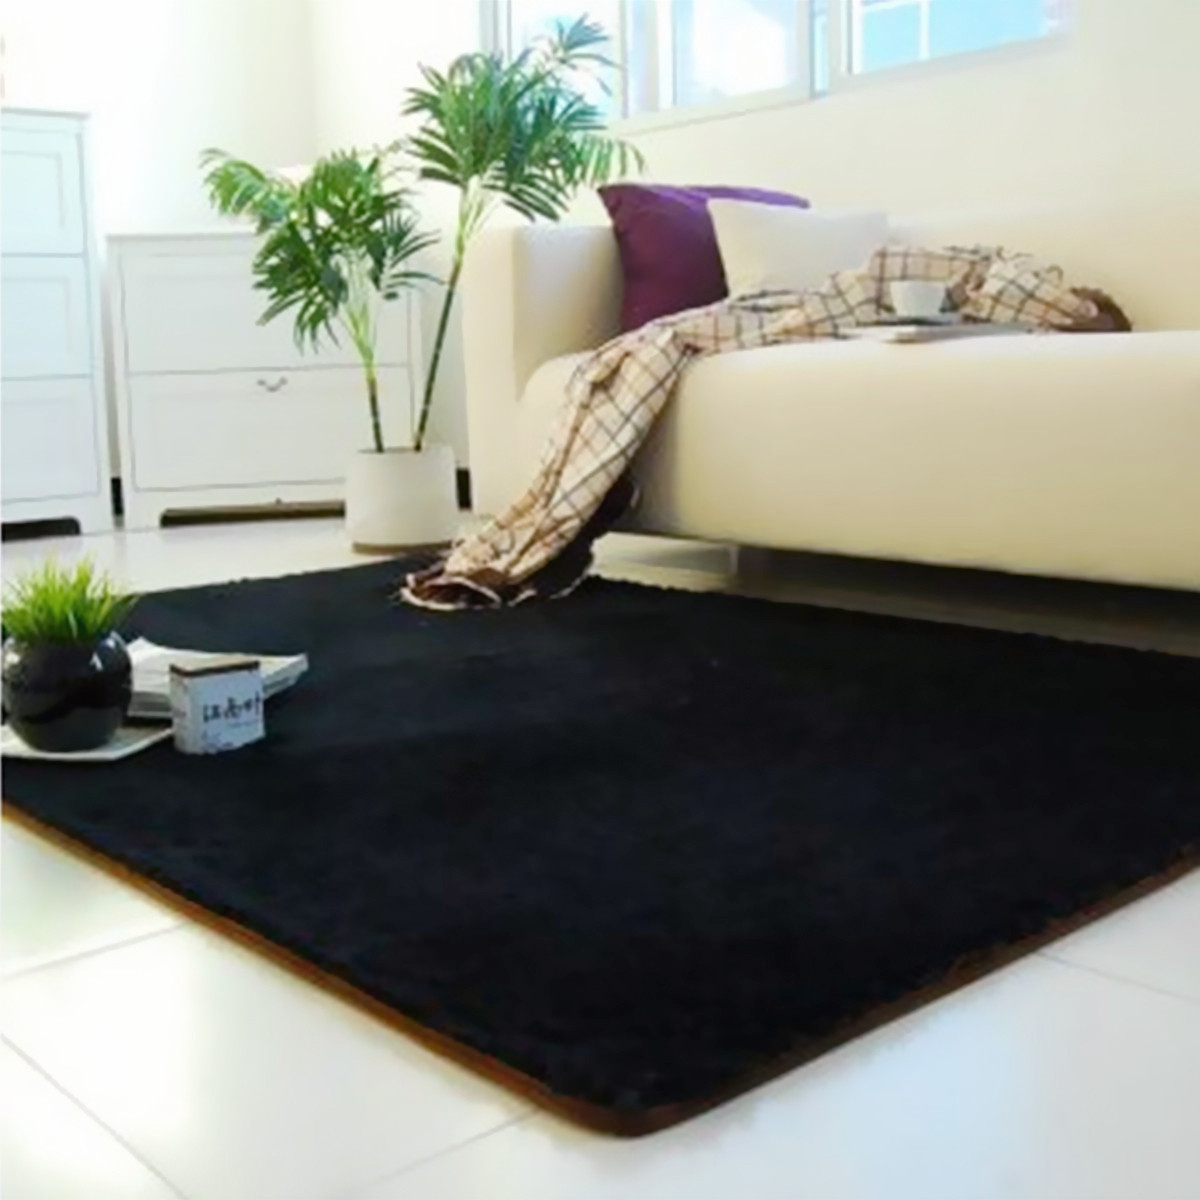 Modern Soft Fluffy Floor Rug Anti Skid Shag Shaggy Area Bedroom Dining Room Carpet Yoga Mat Winter Child Play